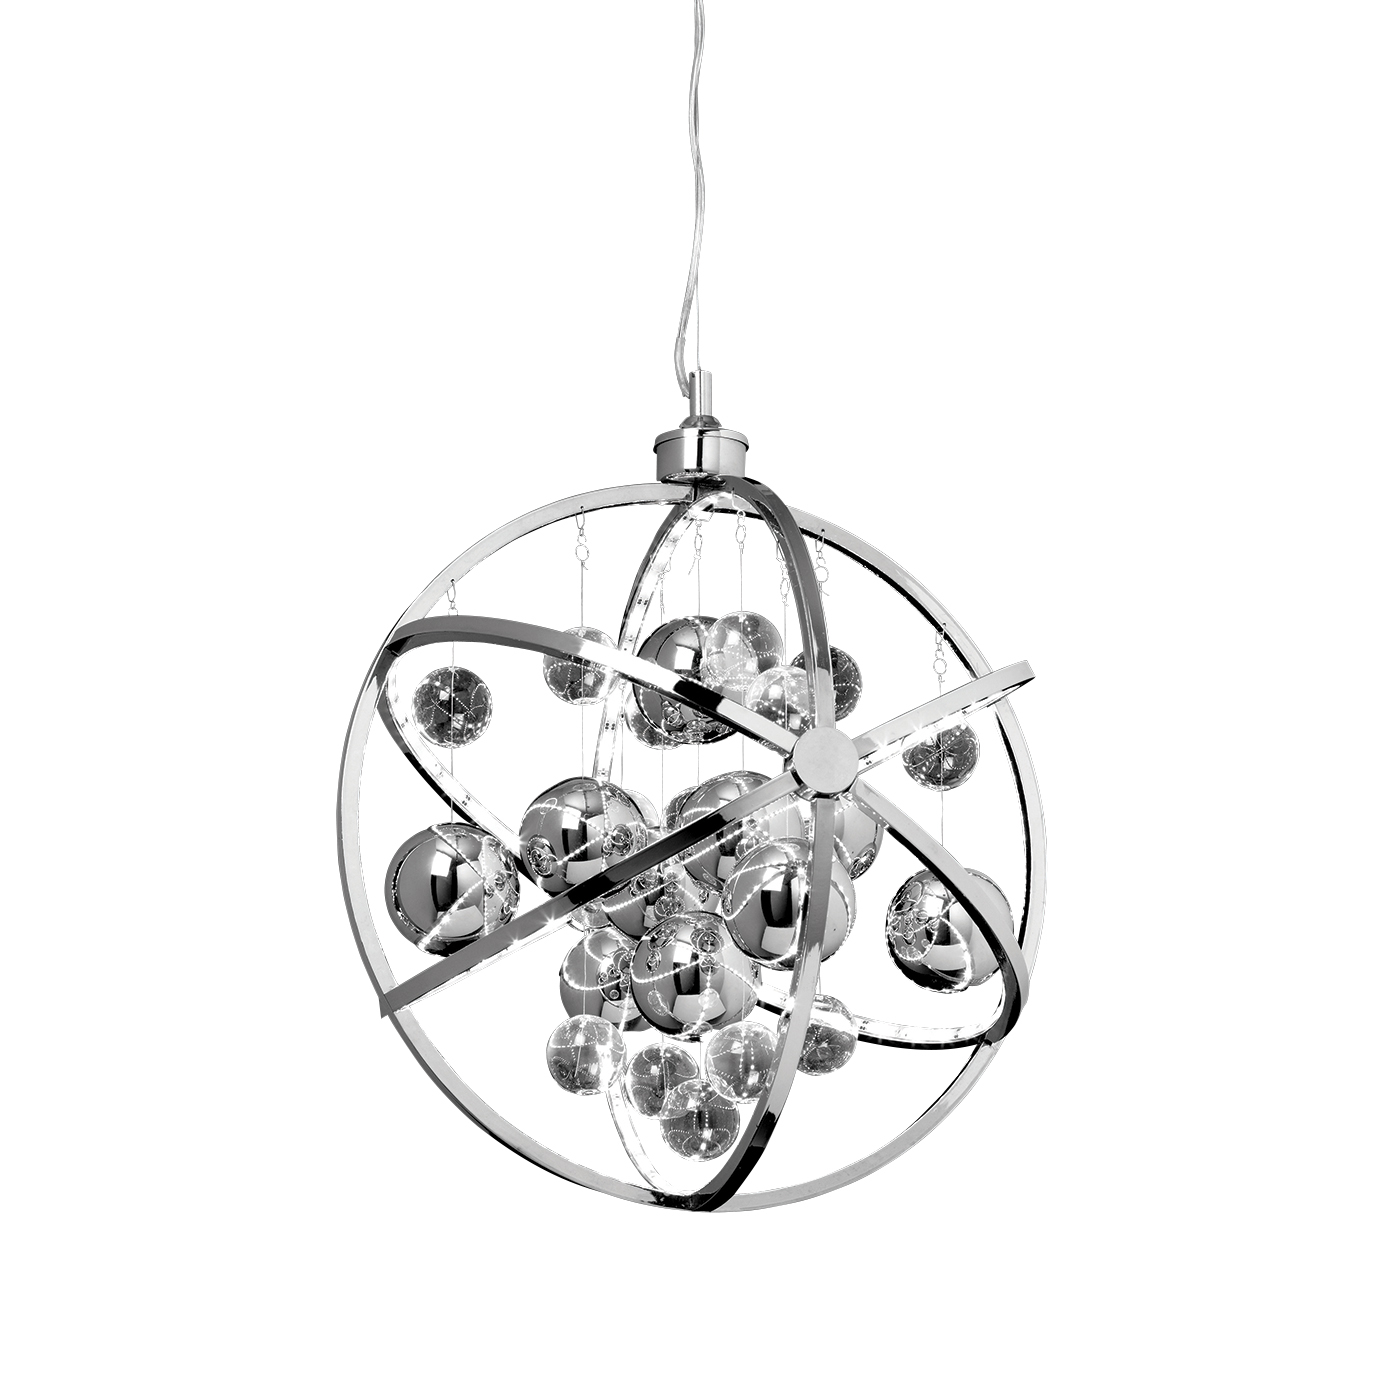 Endon Muni 480mm pendant 10W Chrome effect plate with clear & chrome glass balls Thumbnail 1